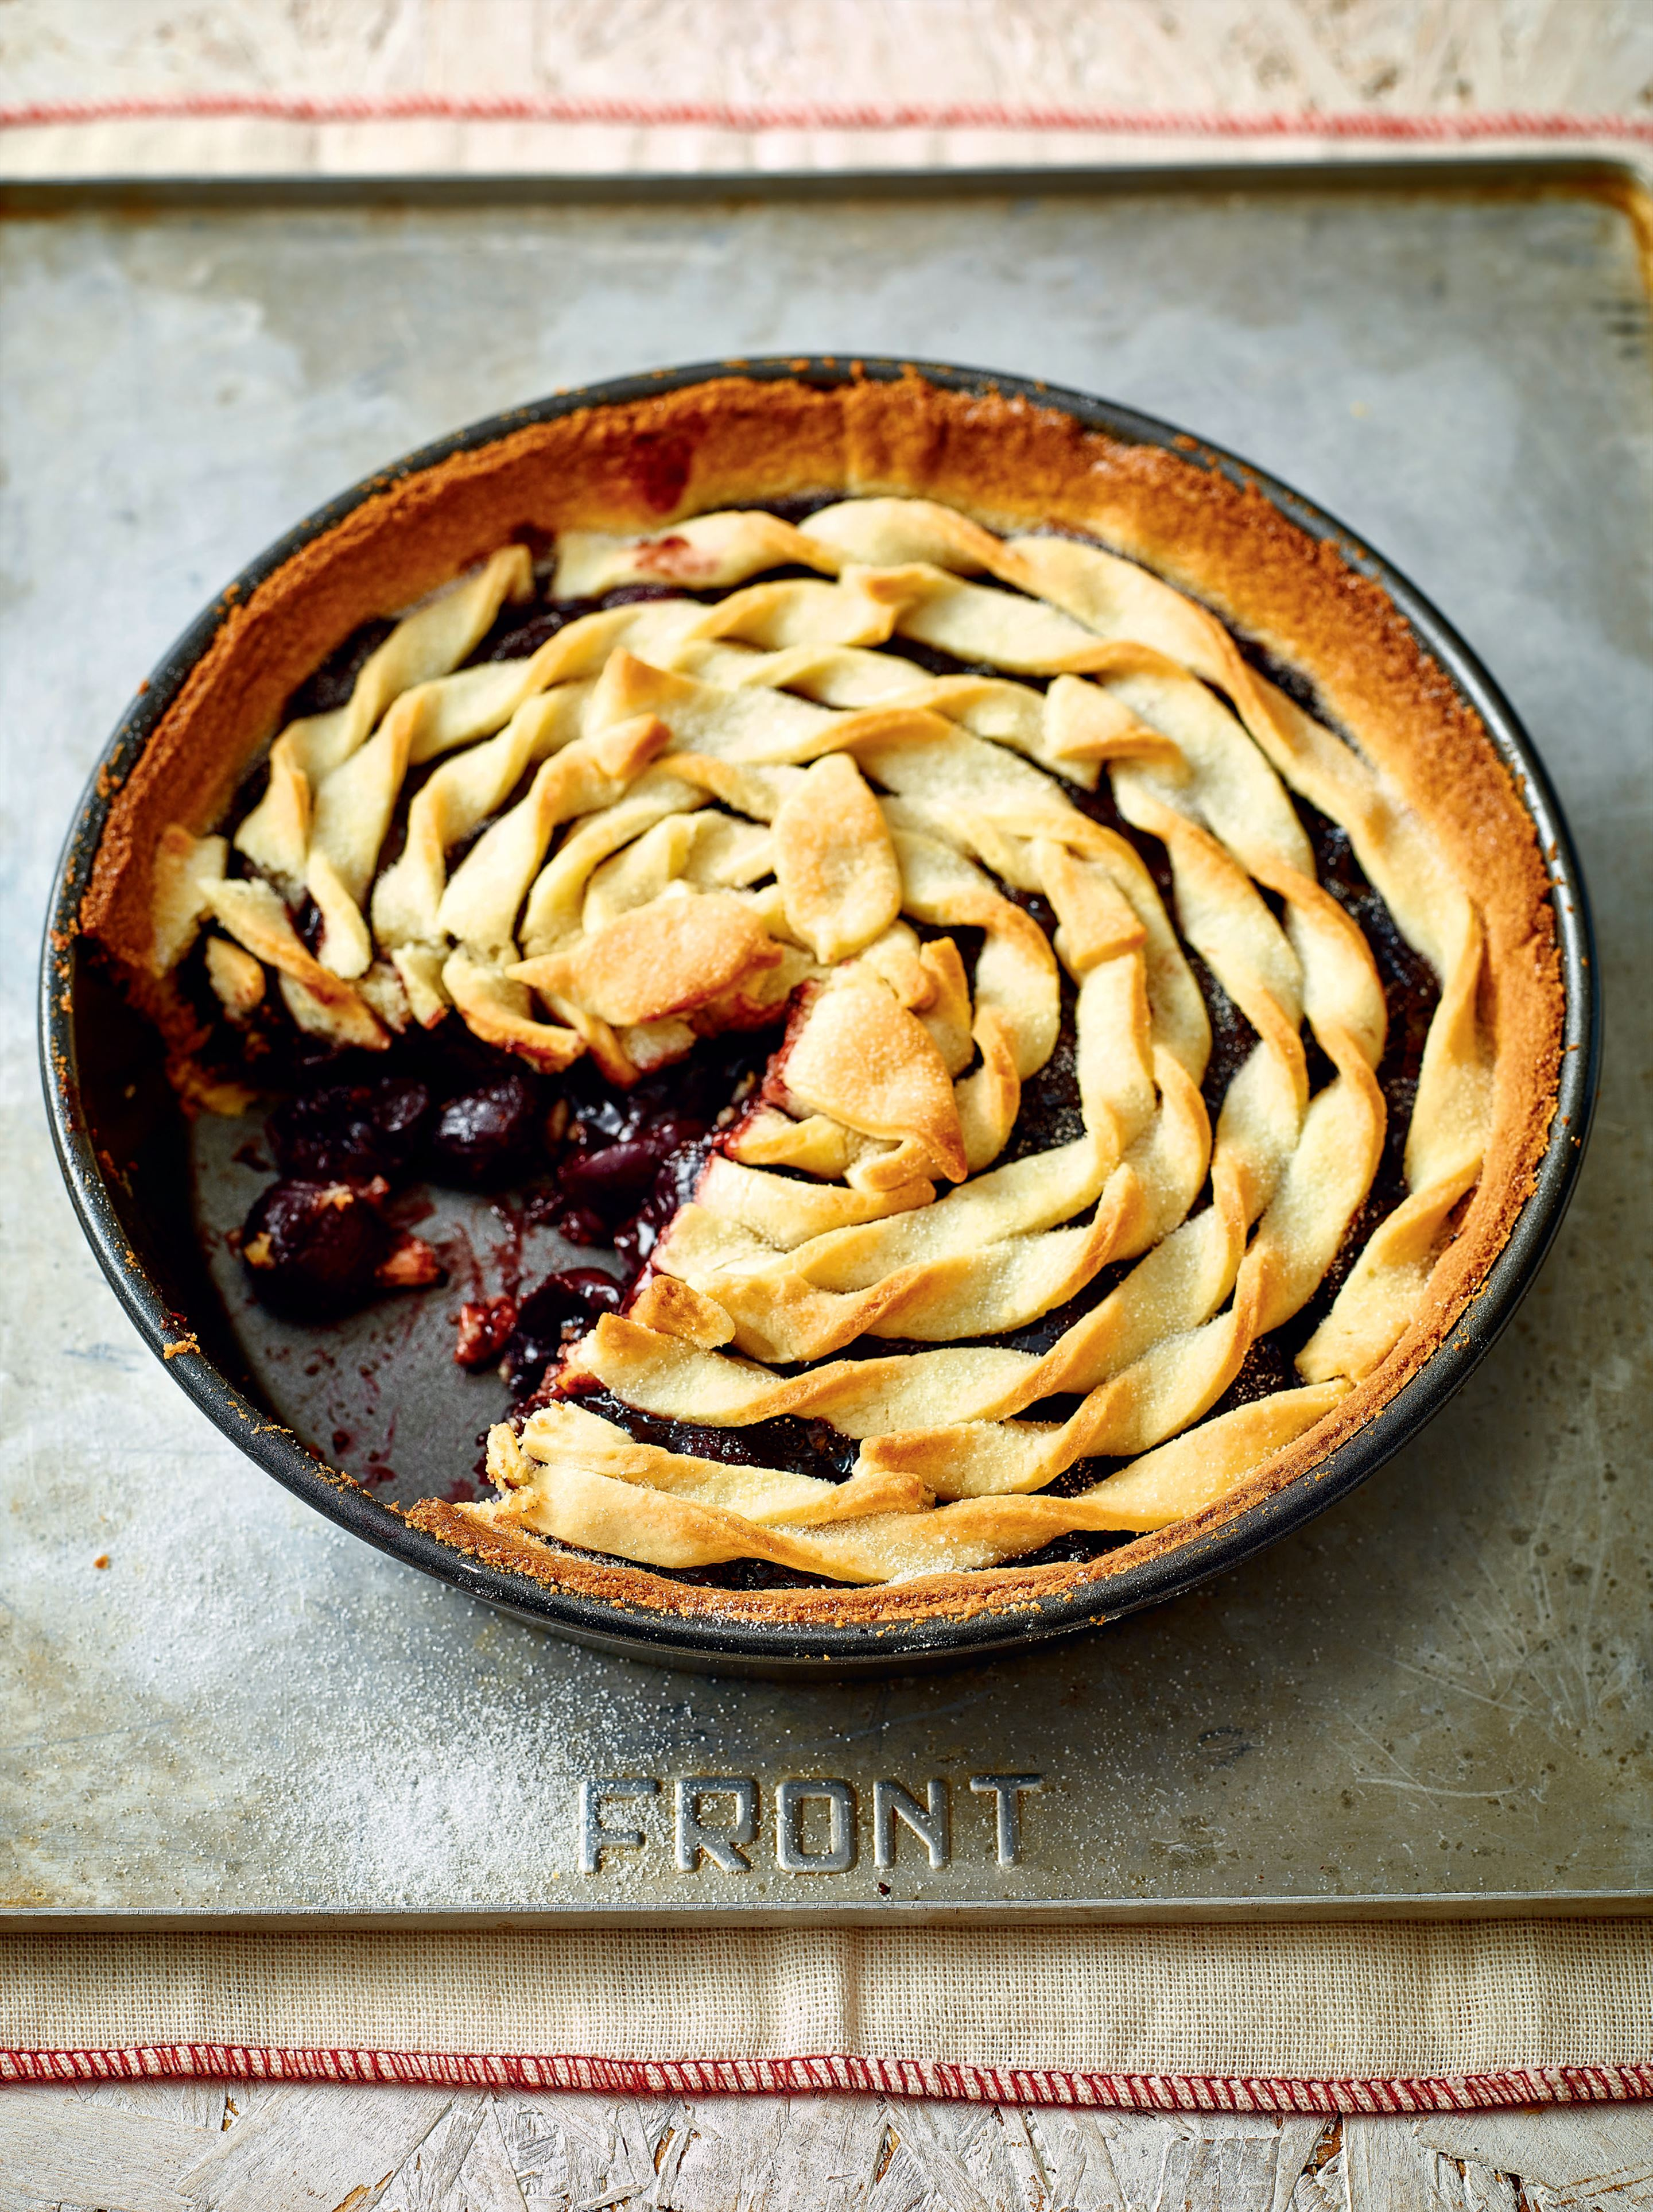 Cherry and peach pie